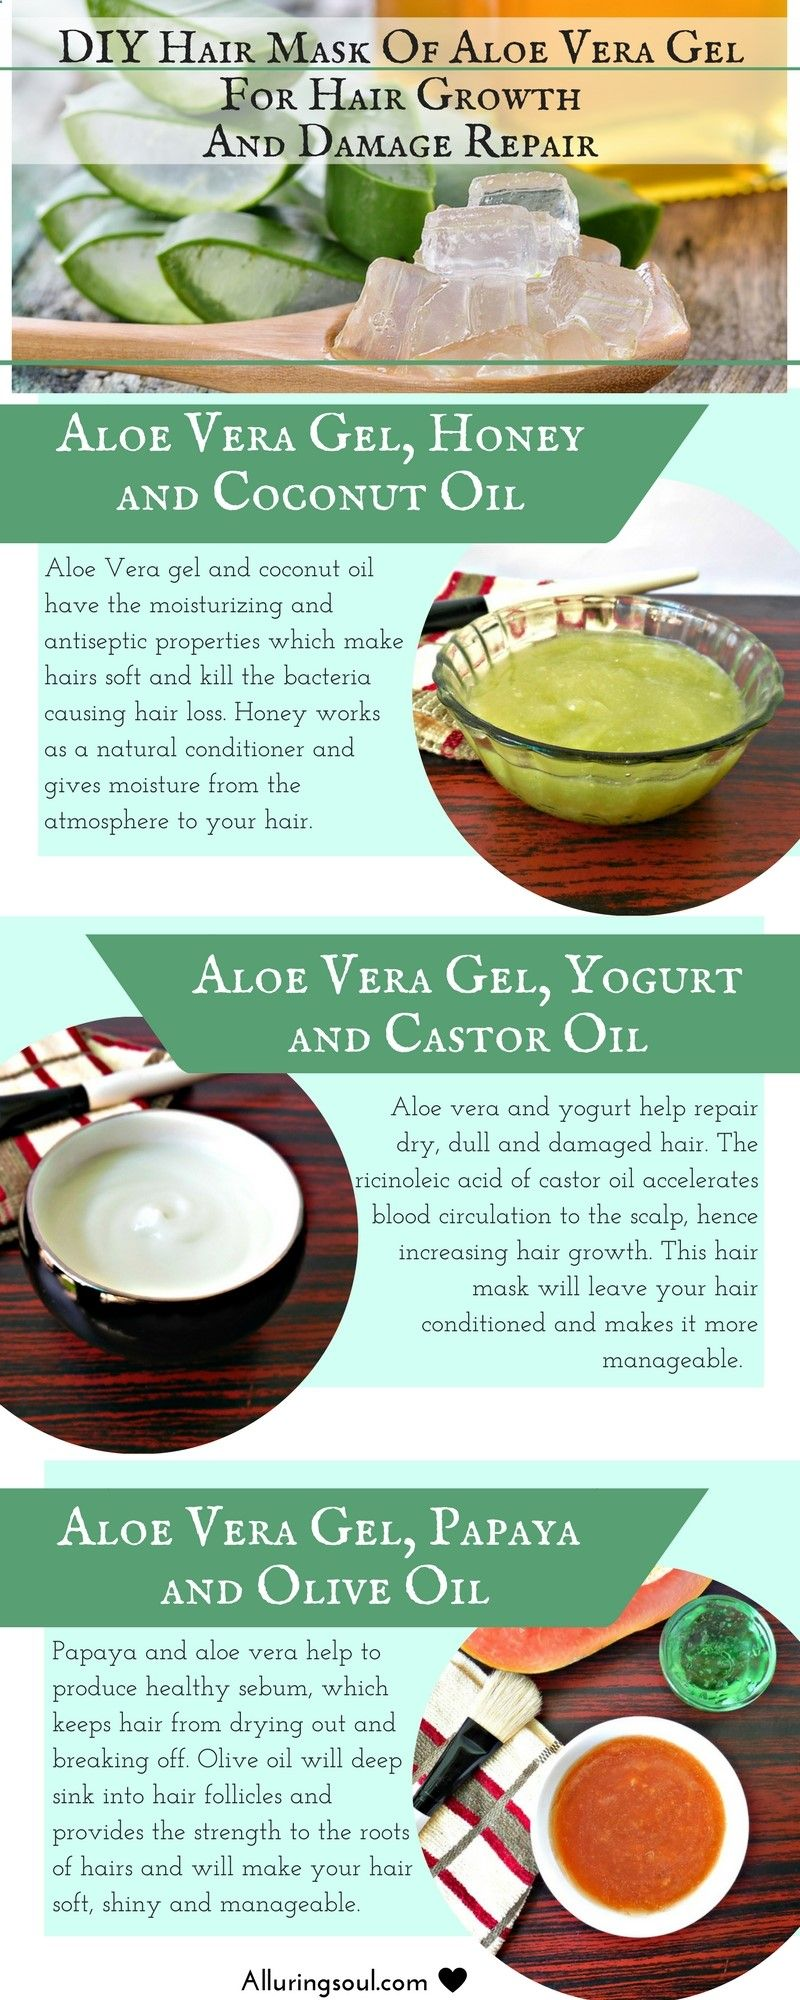 Apply Hair Mask Of Aloe Vera Gel Which Promotes Hair Growth